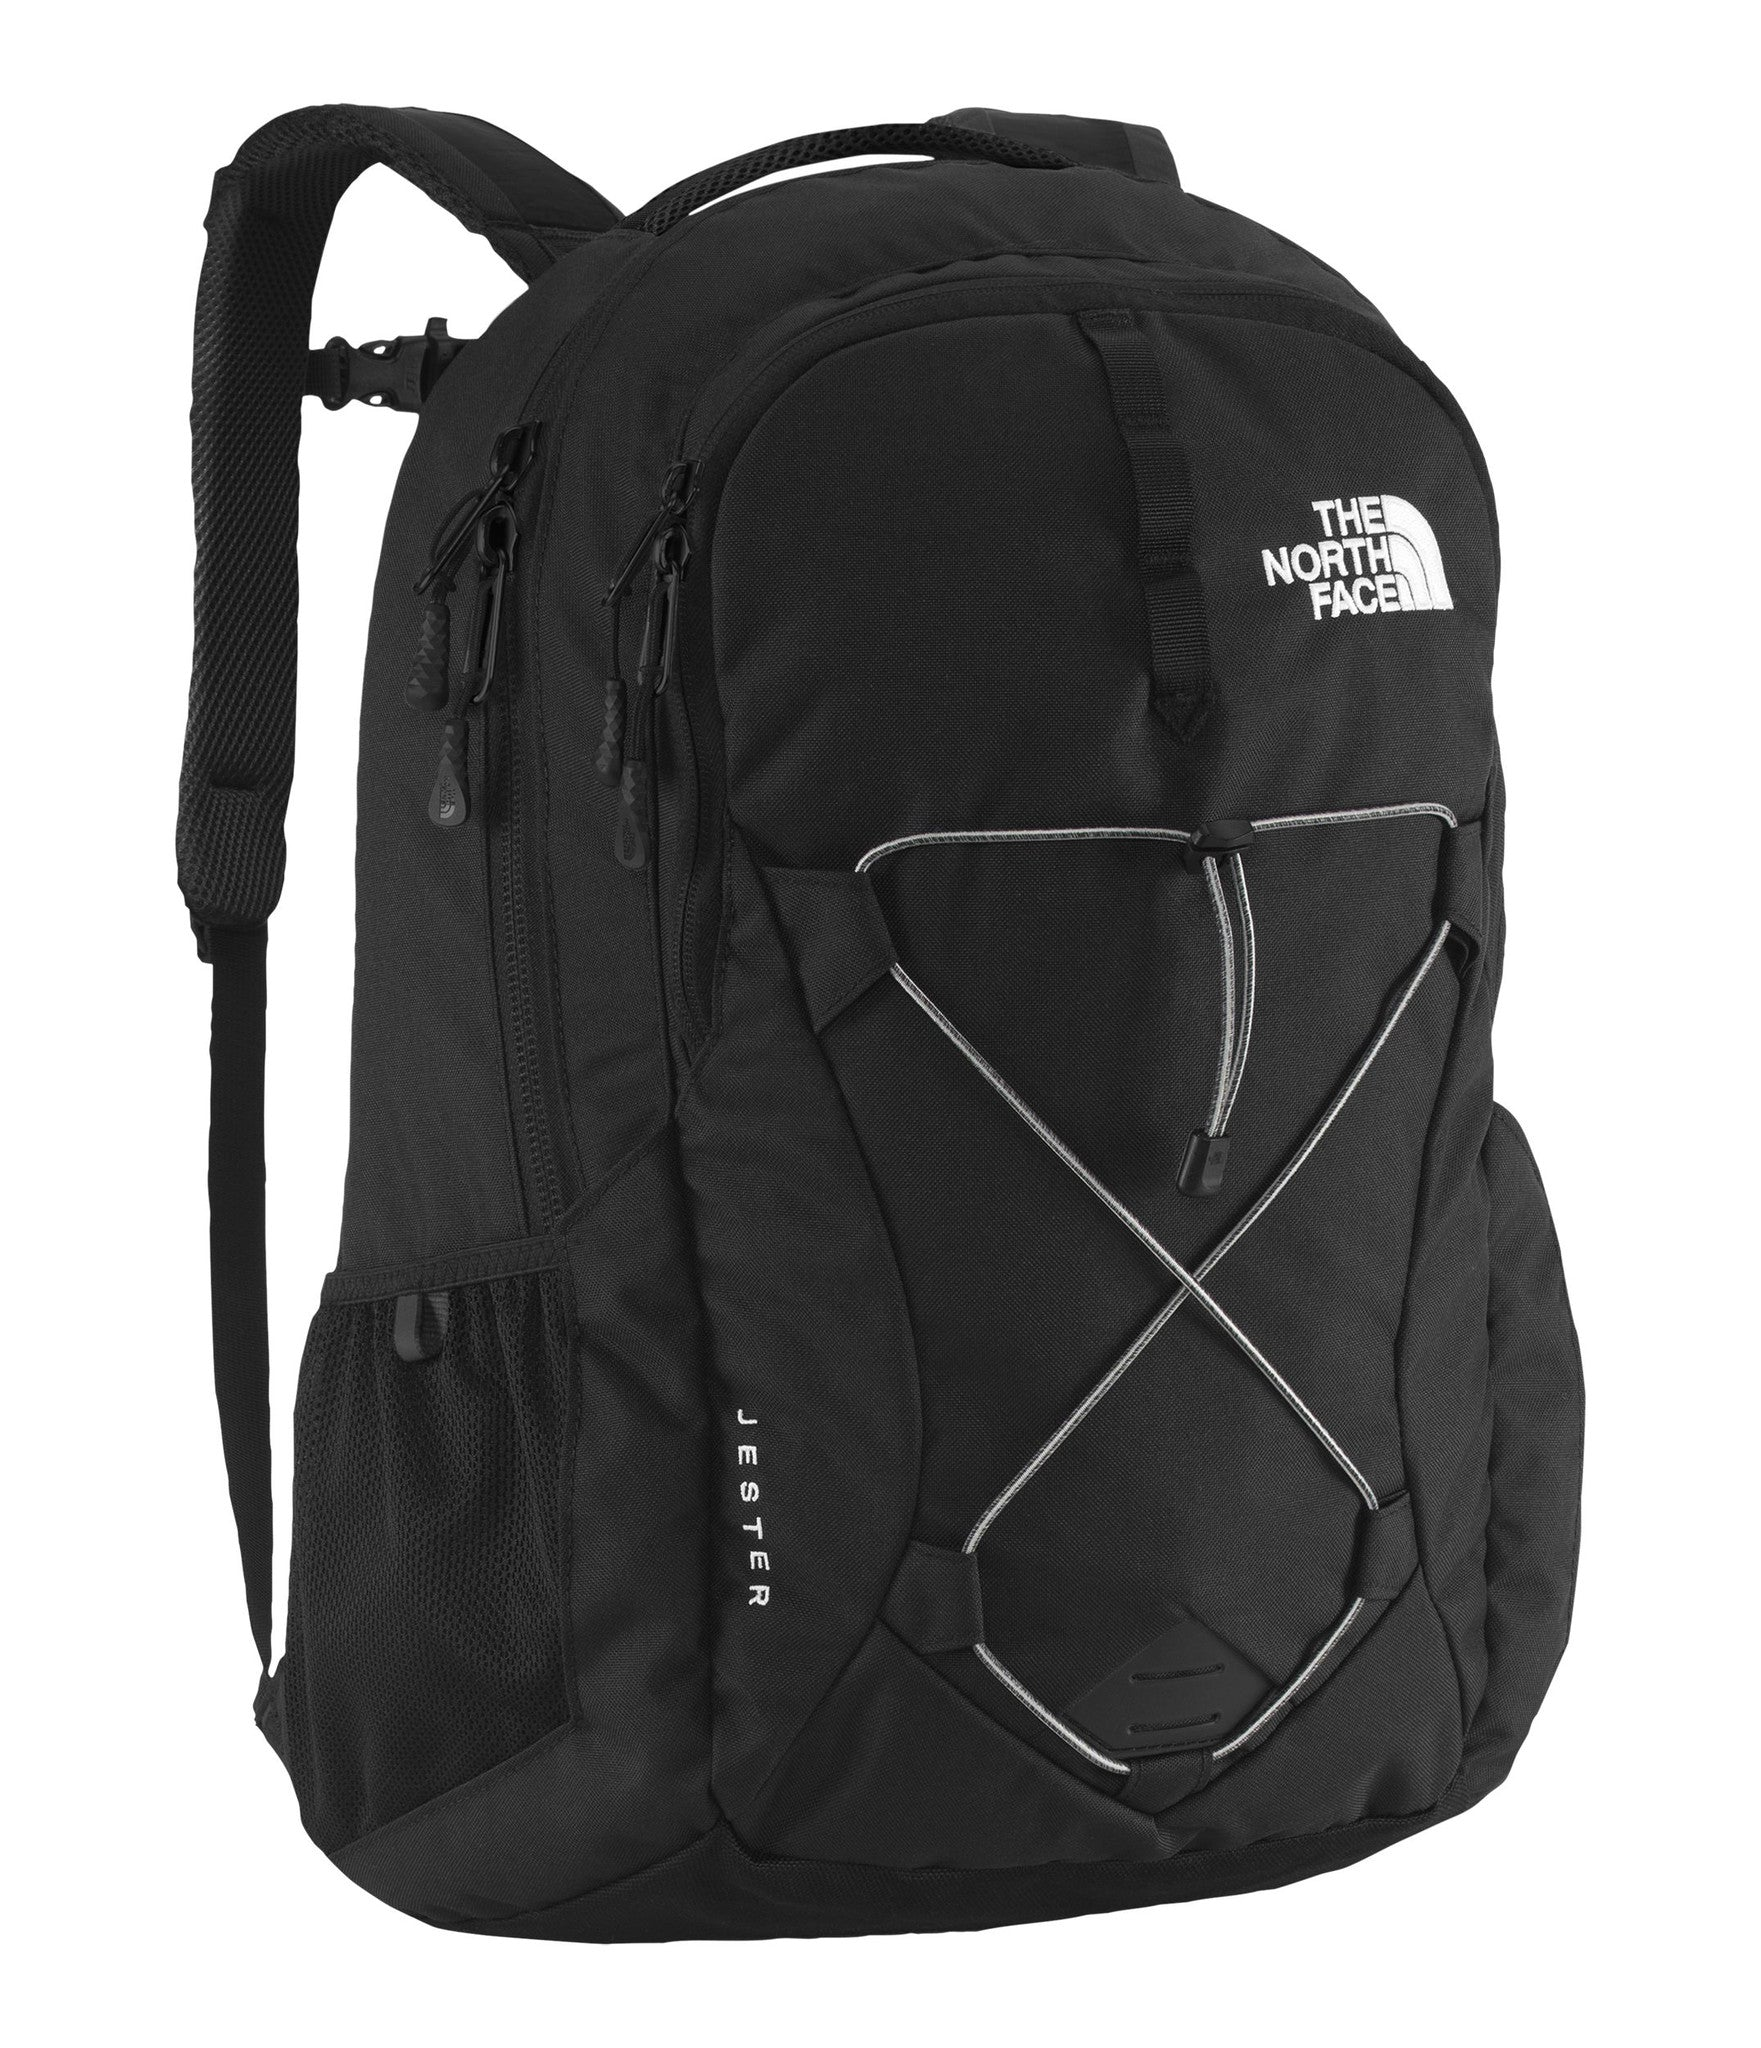 The North Face Women's Jester Backpack in TNF Black